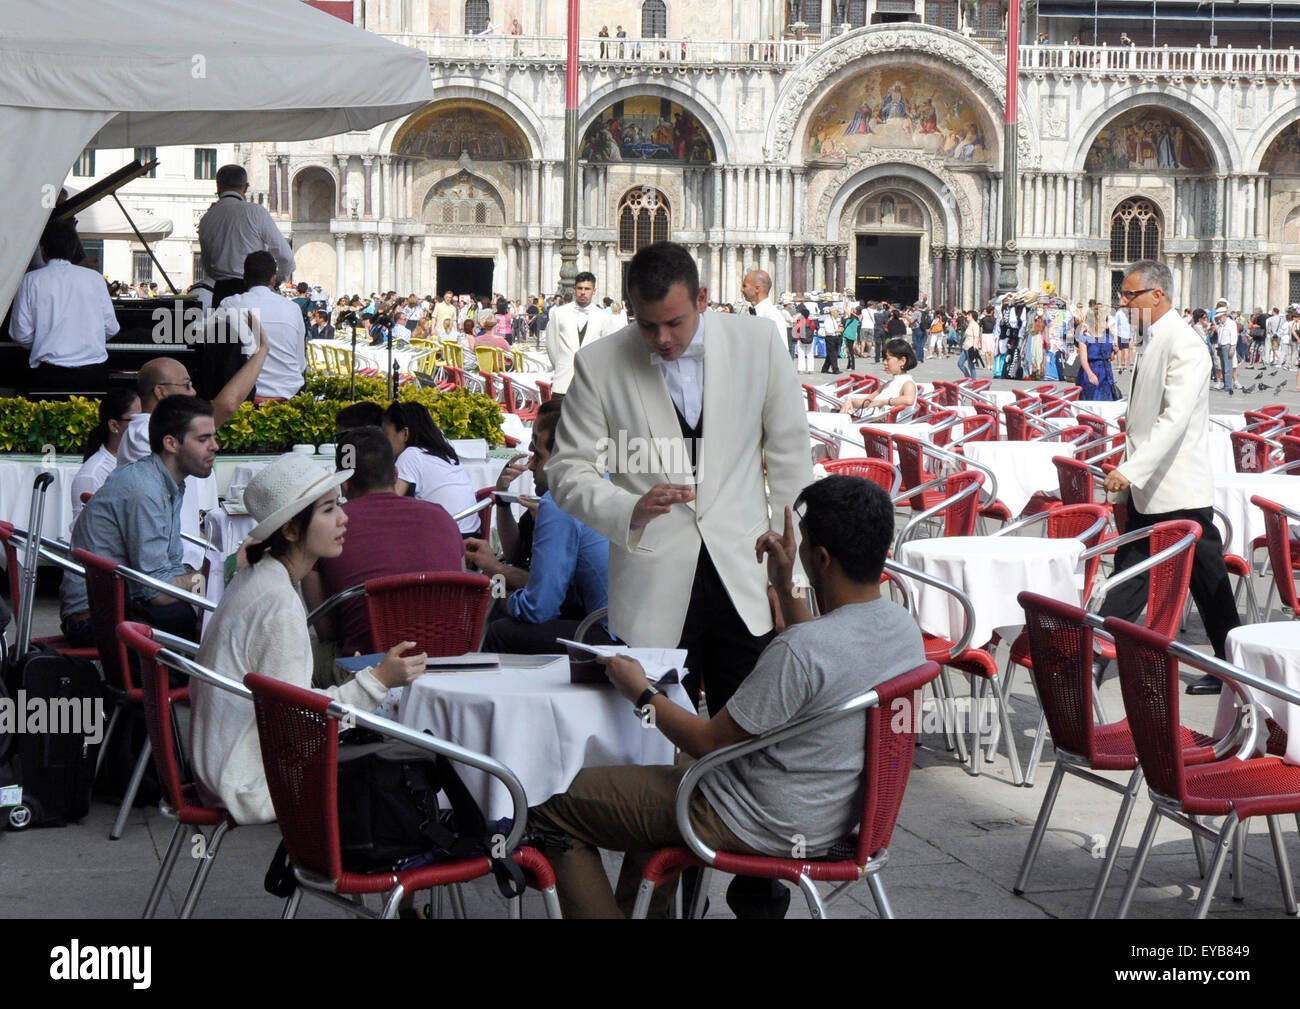 Italy Venice Piazza San Marco cafe - customer and waiter - sign language - a misunderstanding perhaps - backdrop - Stock Image